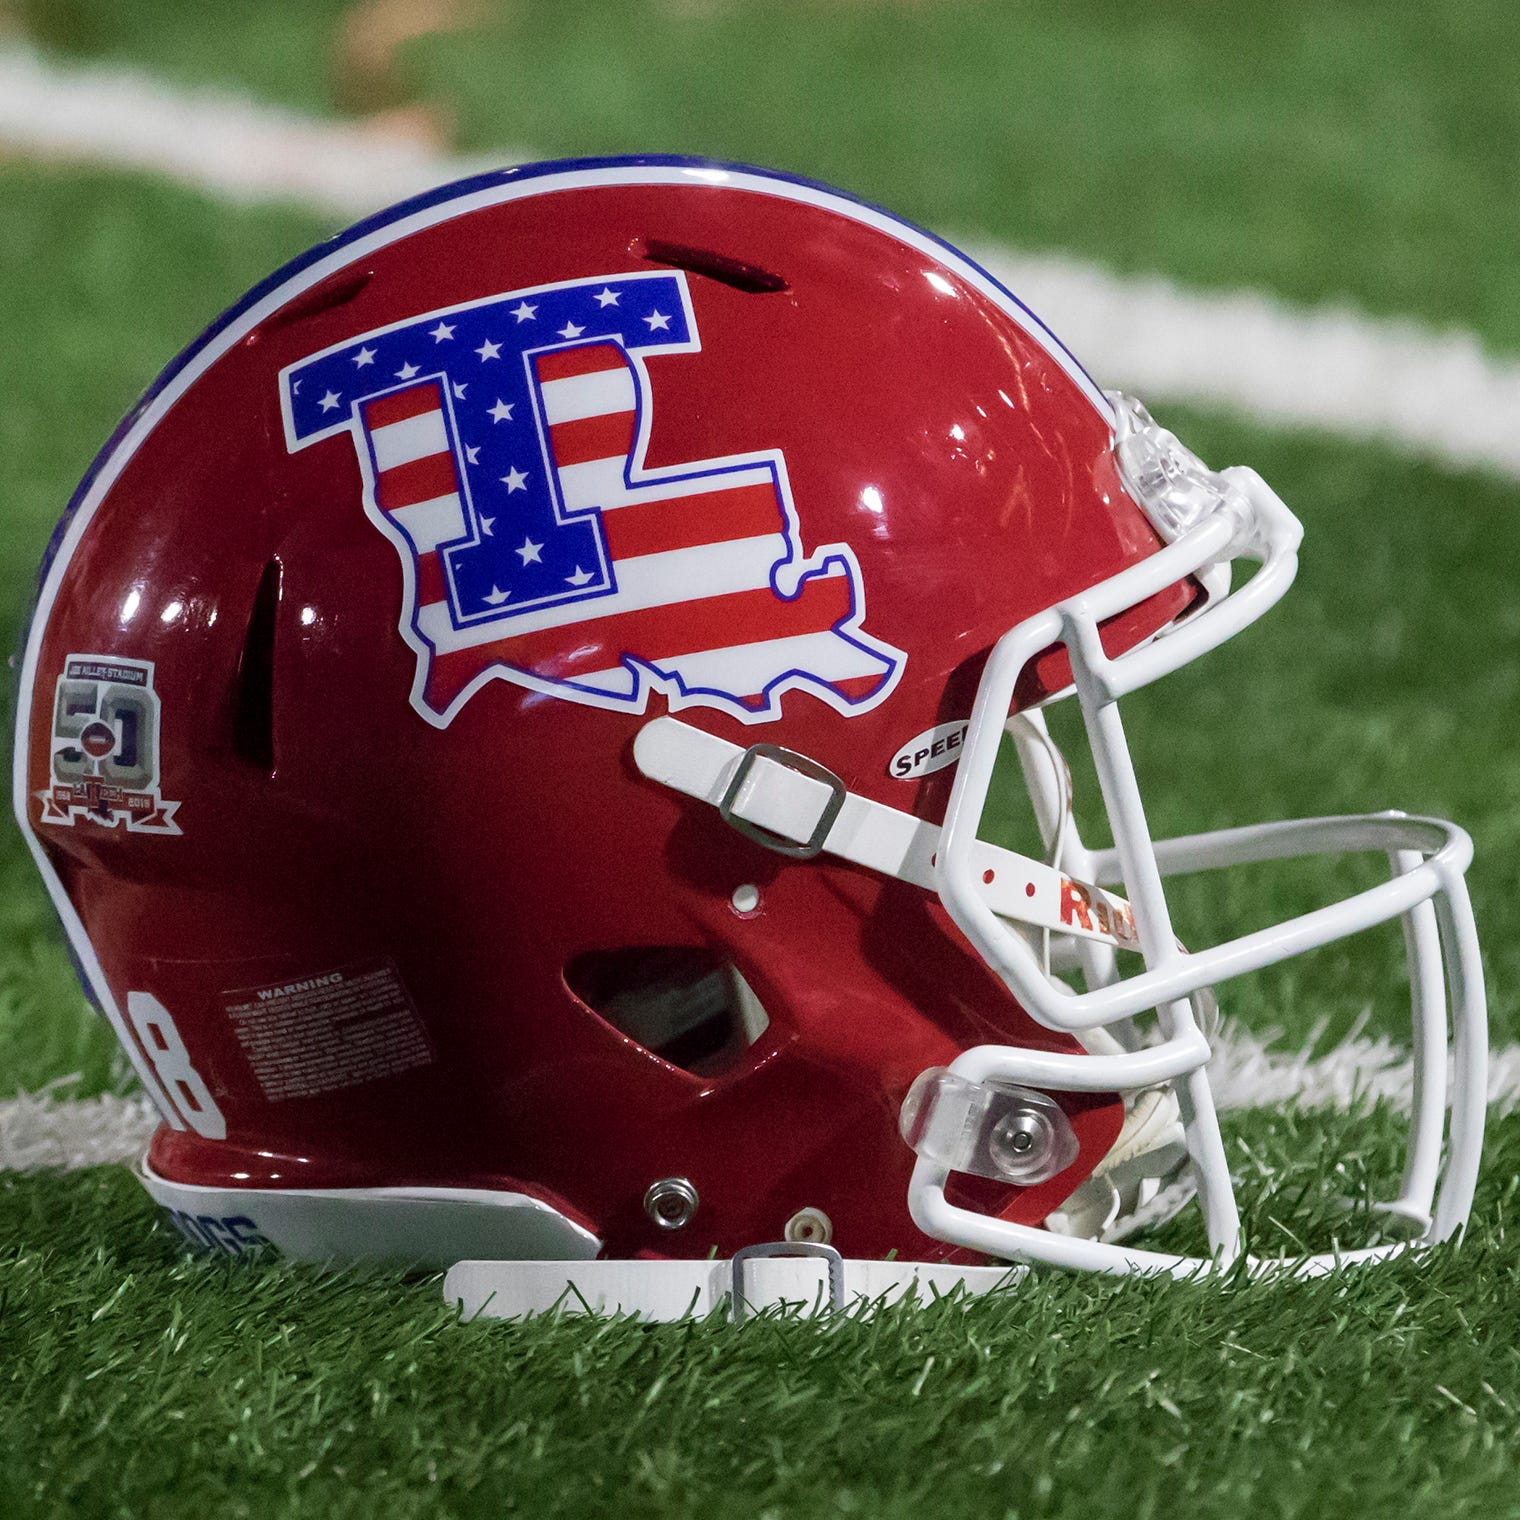 LA Tech's 2019 C-USA slate gets tougher with FIU, Marshall for cross-division games